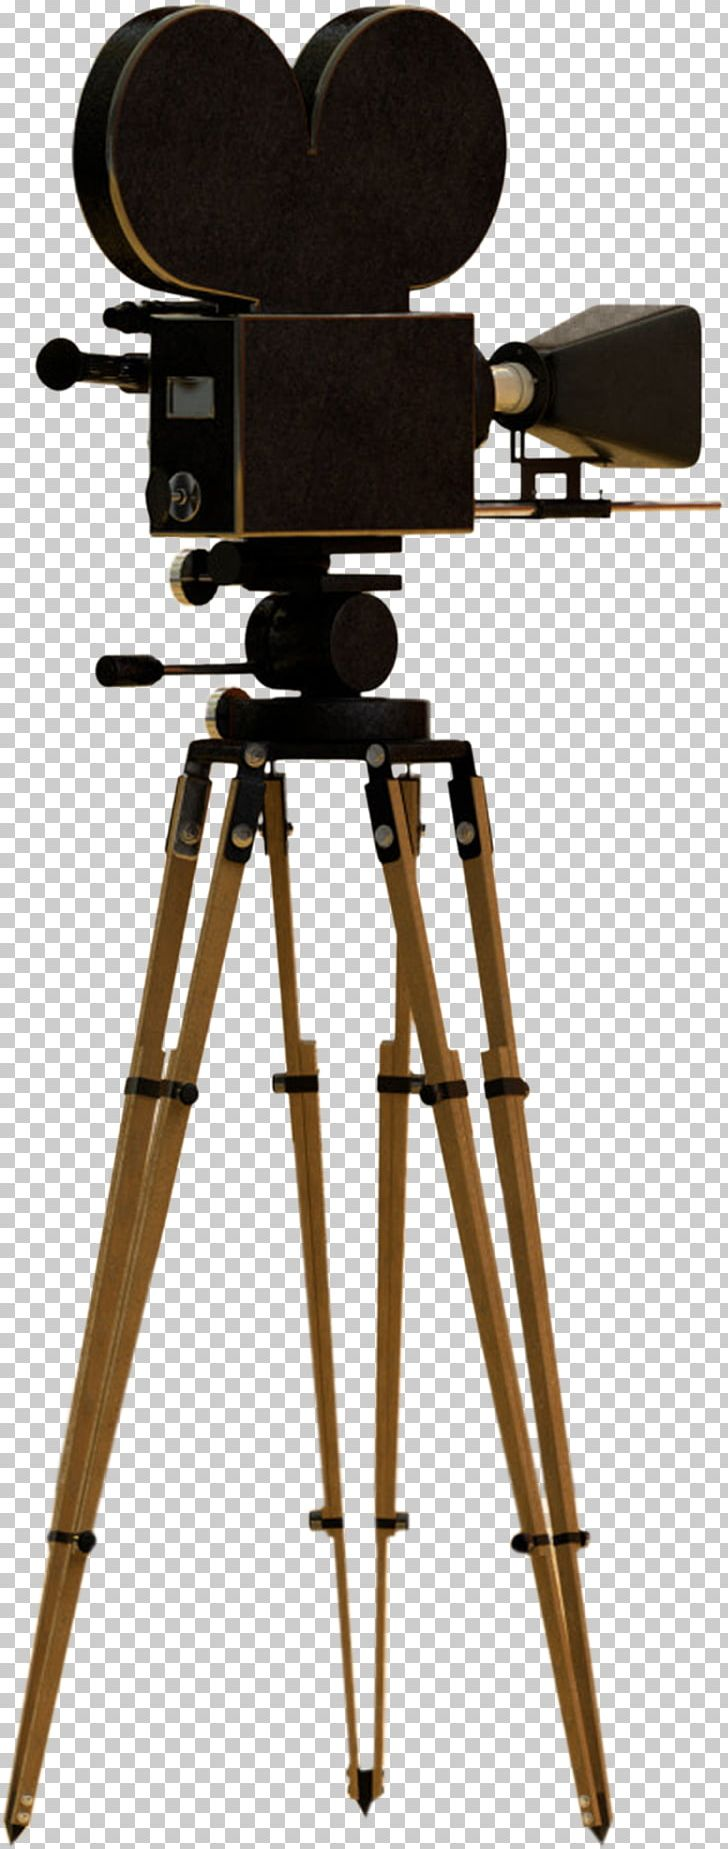 Movie Camera Tripod Video Cameras PNG, Clipart, Camera, Camera Accessory, Chennai Express, Cinematographer, Cinematography Free PNG Download